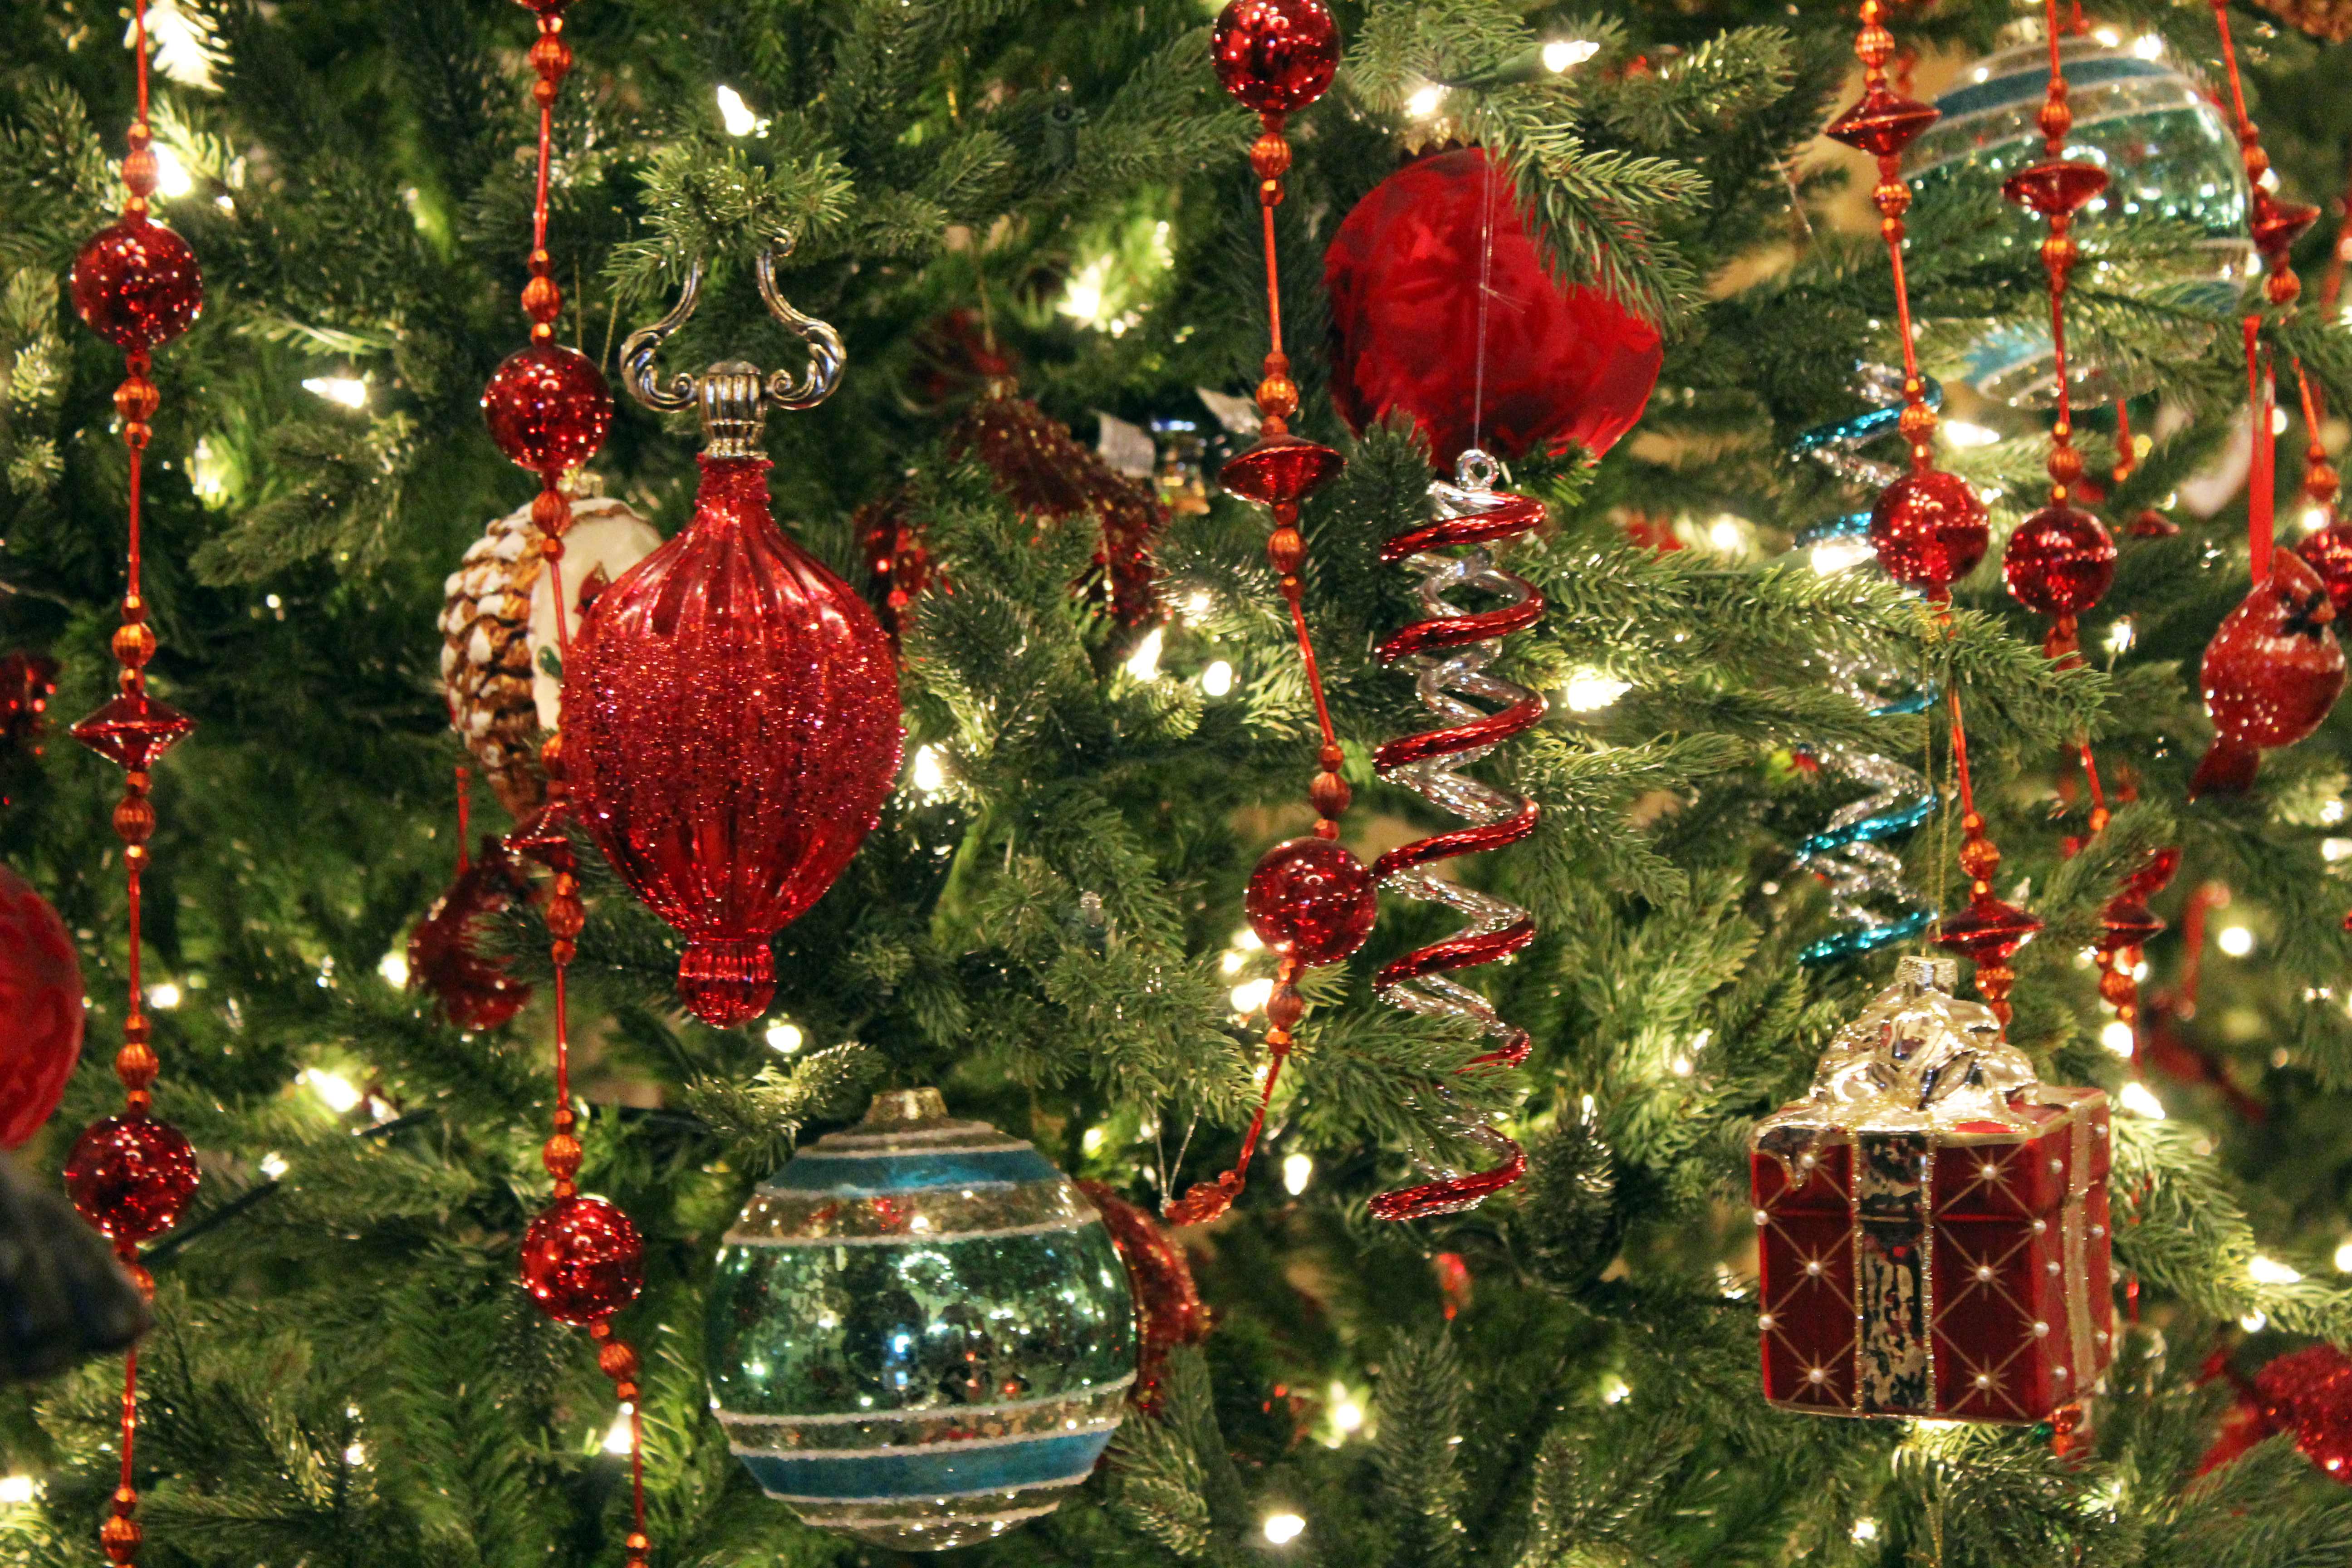 The Breakers - Newport RI | Festive glass ornaments and other baubles adorn one of thirty magnificent Christmas trees during the holidays at The Breakers mansion.